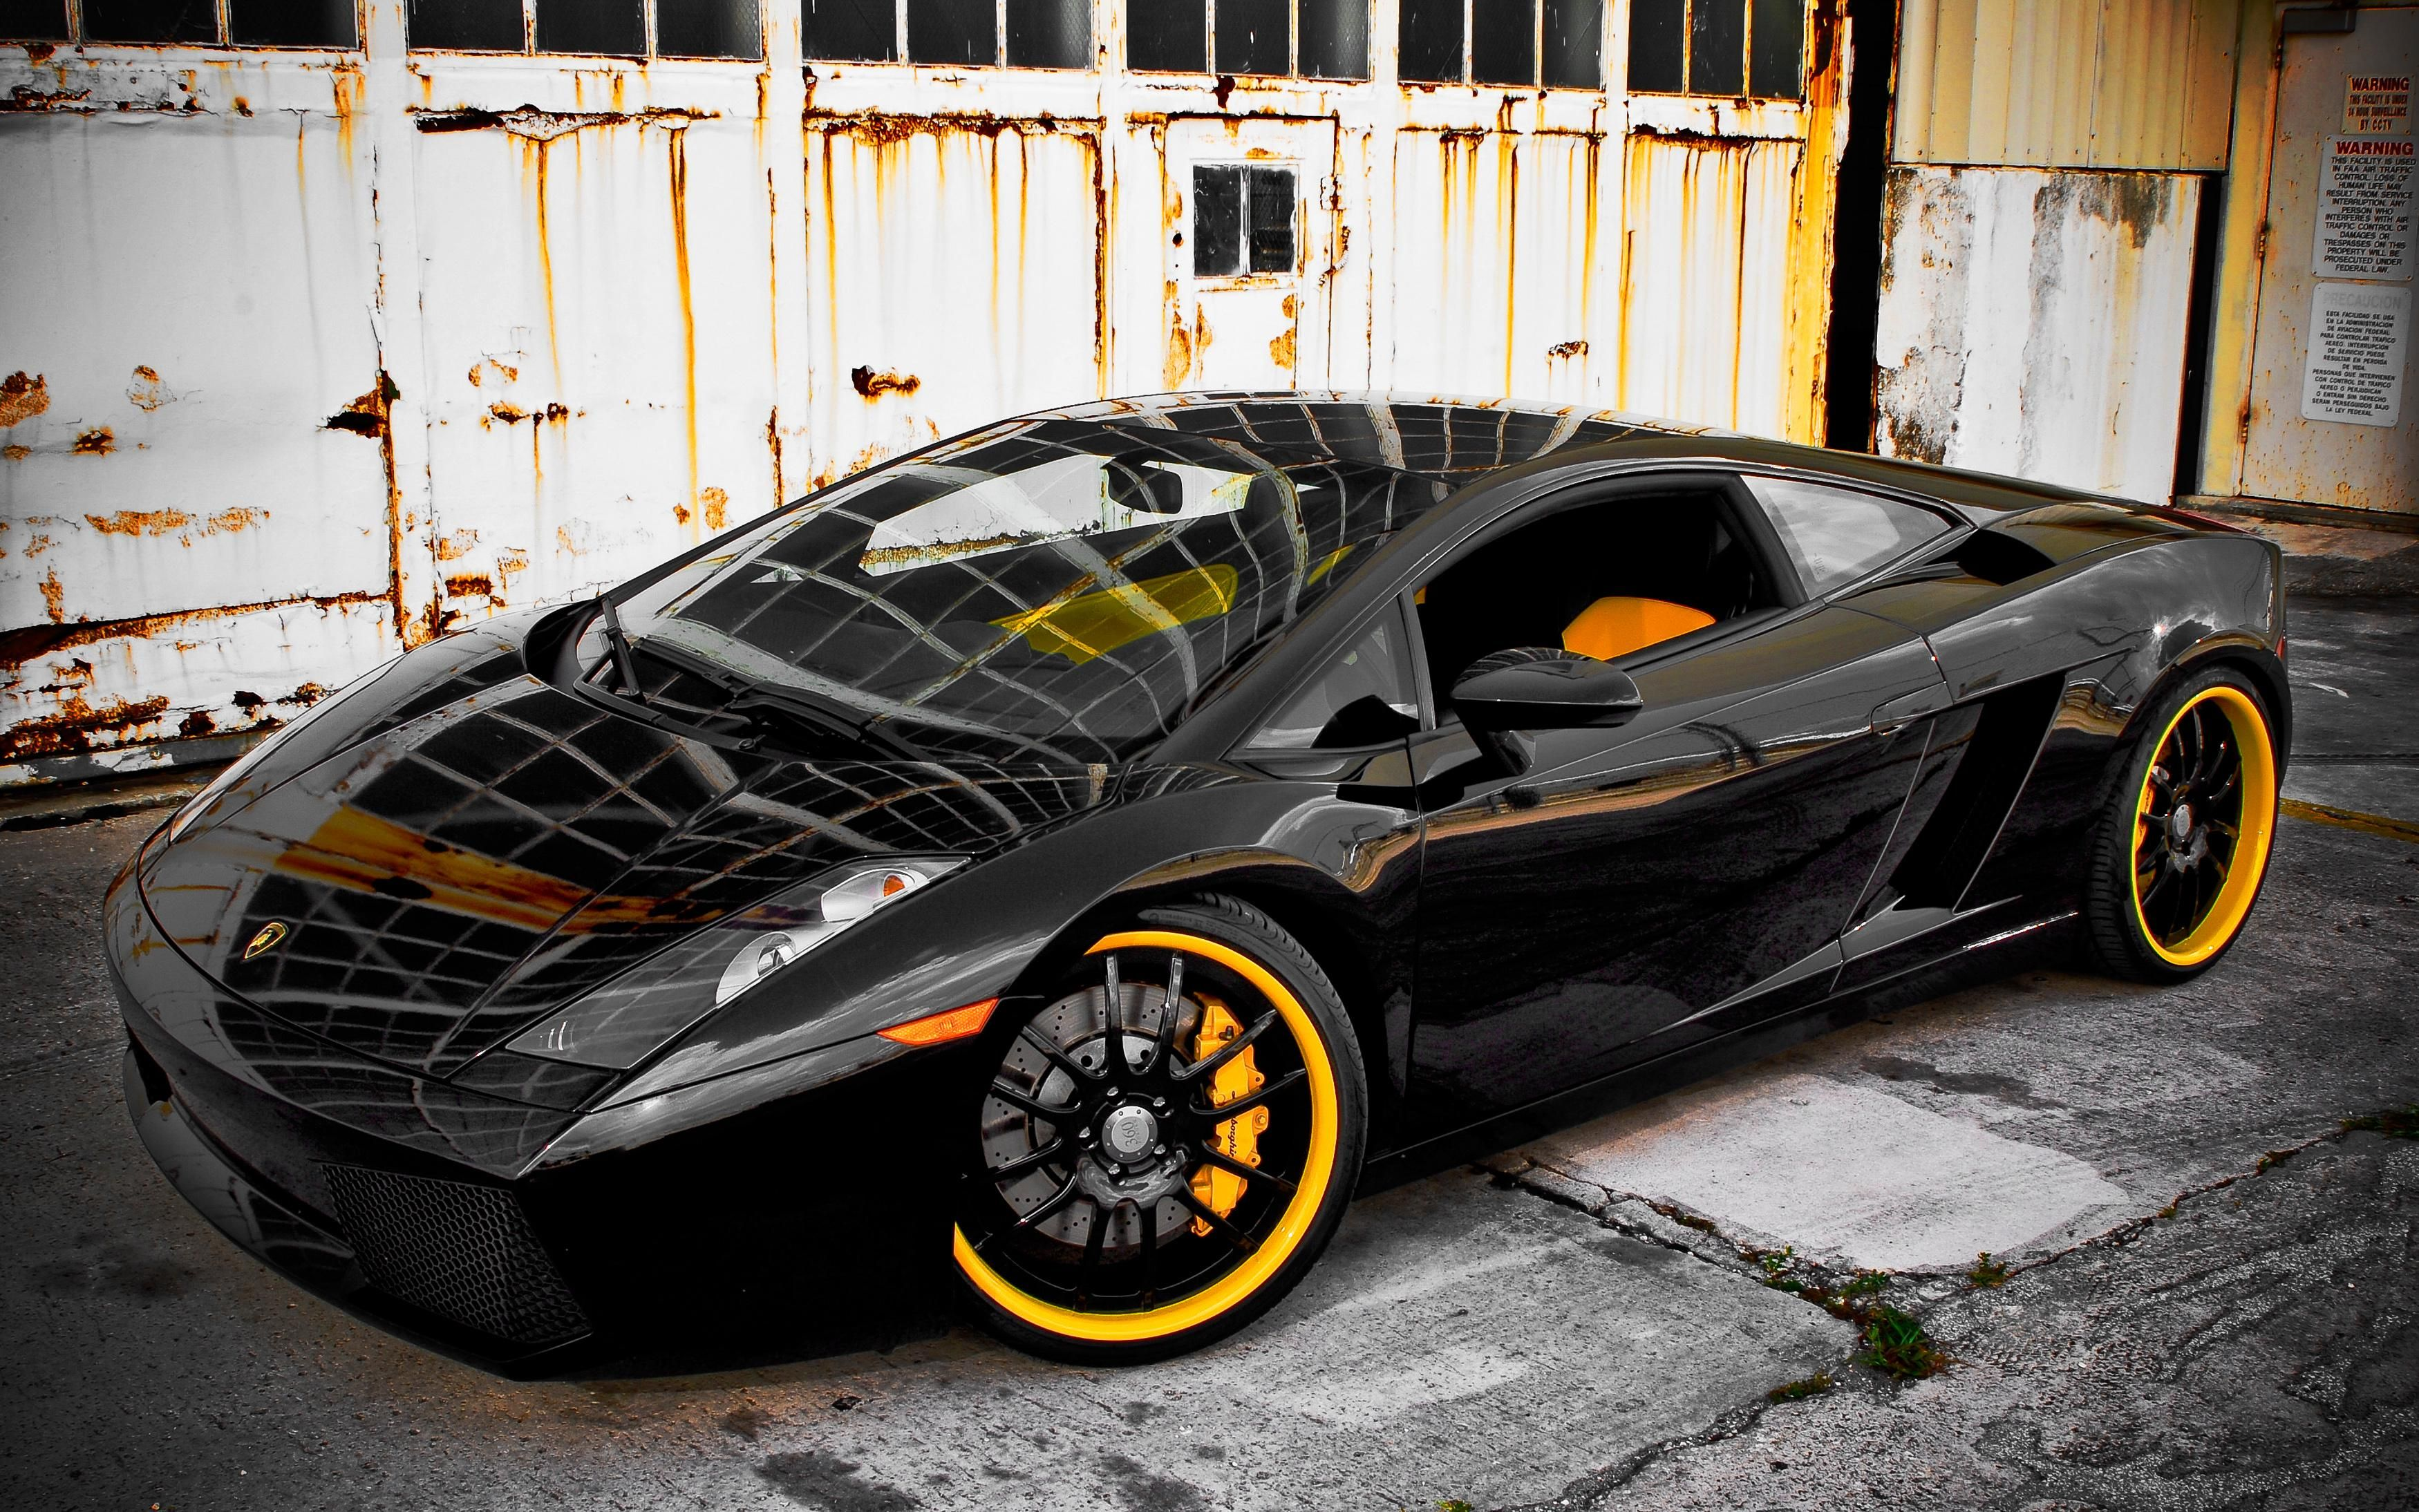 muscle garage spyder real dsc paint lamborghini owner cars miles mint original kept exotic for sale classic gallardo low listings clean used carfax